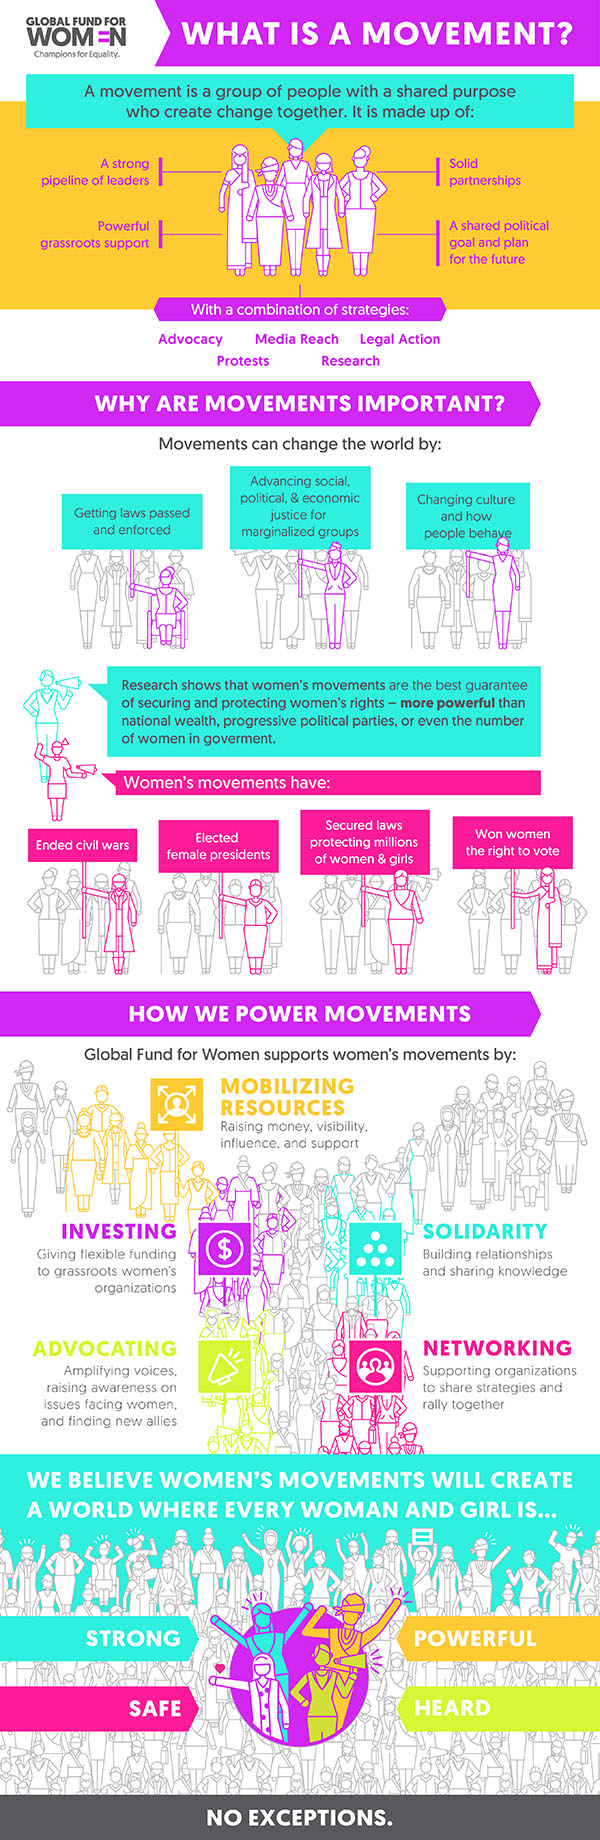 movement infographic